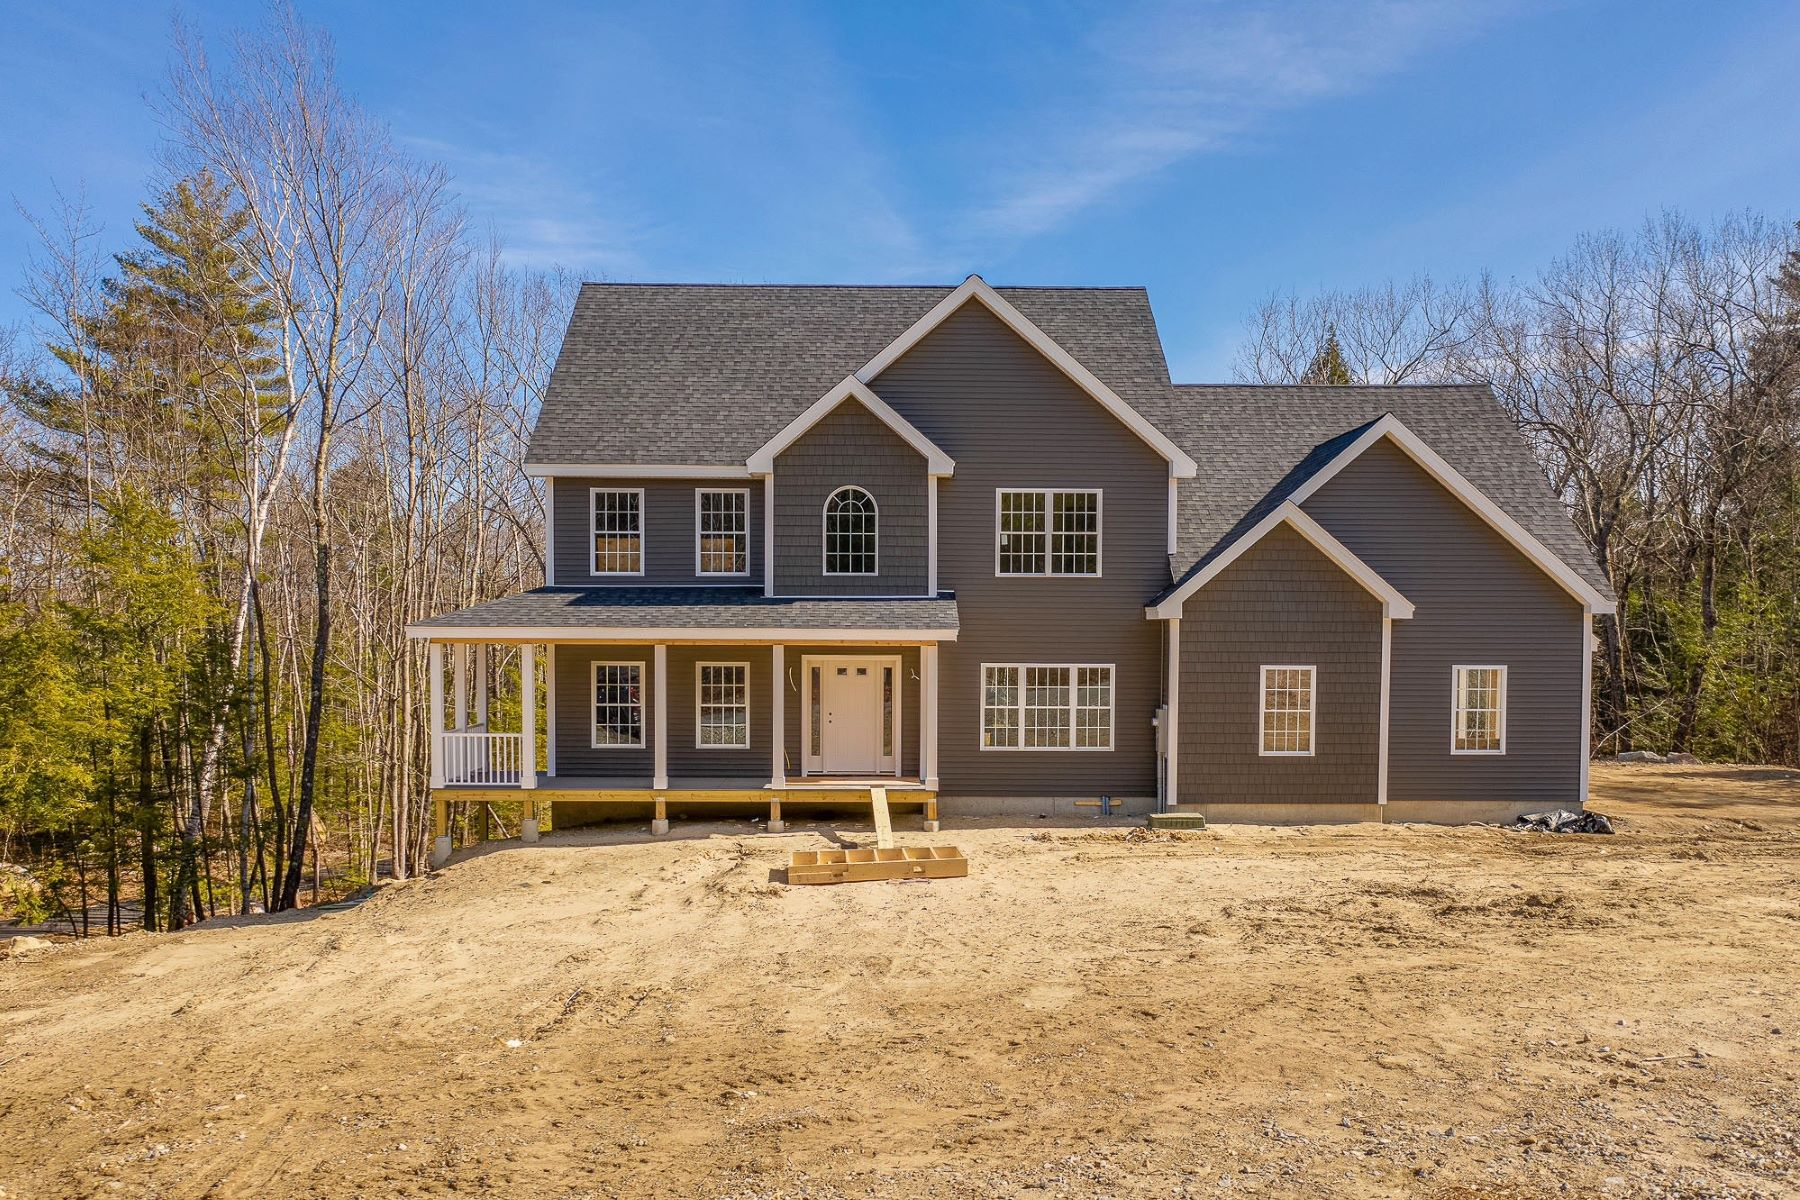 Single Family Homes for Sale at New Construction Craftsman Home in New Boston 109 Indian Falls Road 88-4 New Boston, New Hampshire 03070 United States